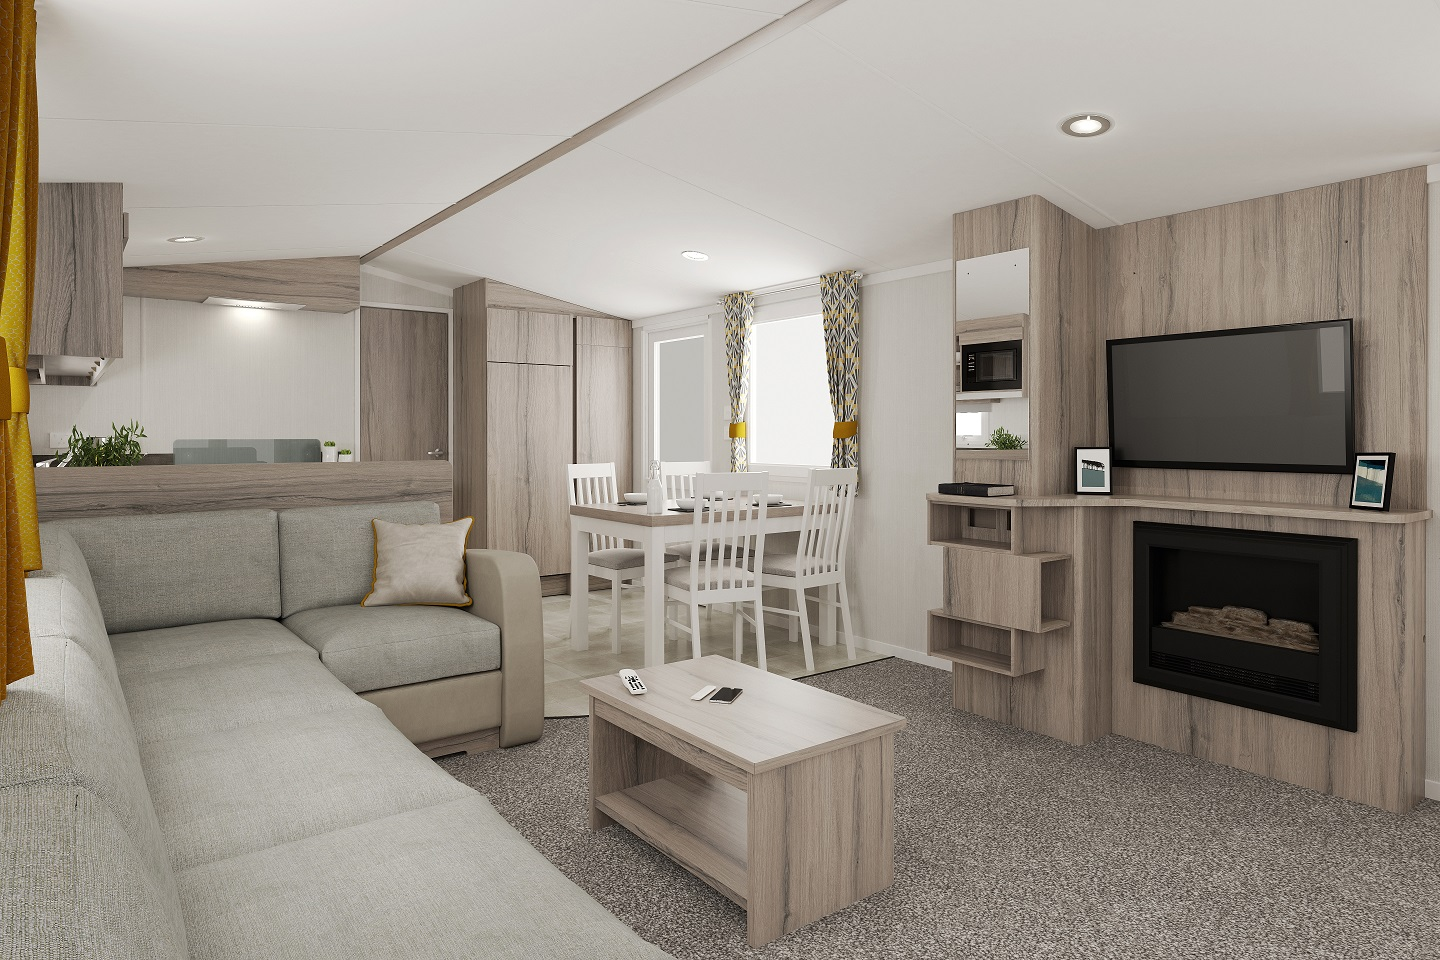 Swift Ardennes ES: New Static Caravans and Holiday Homes for Sale, On Order Large Image 2